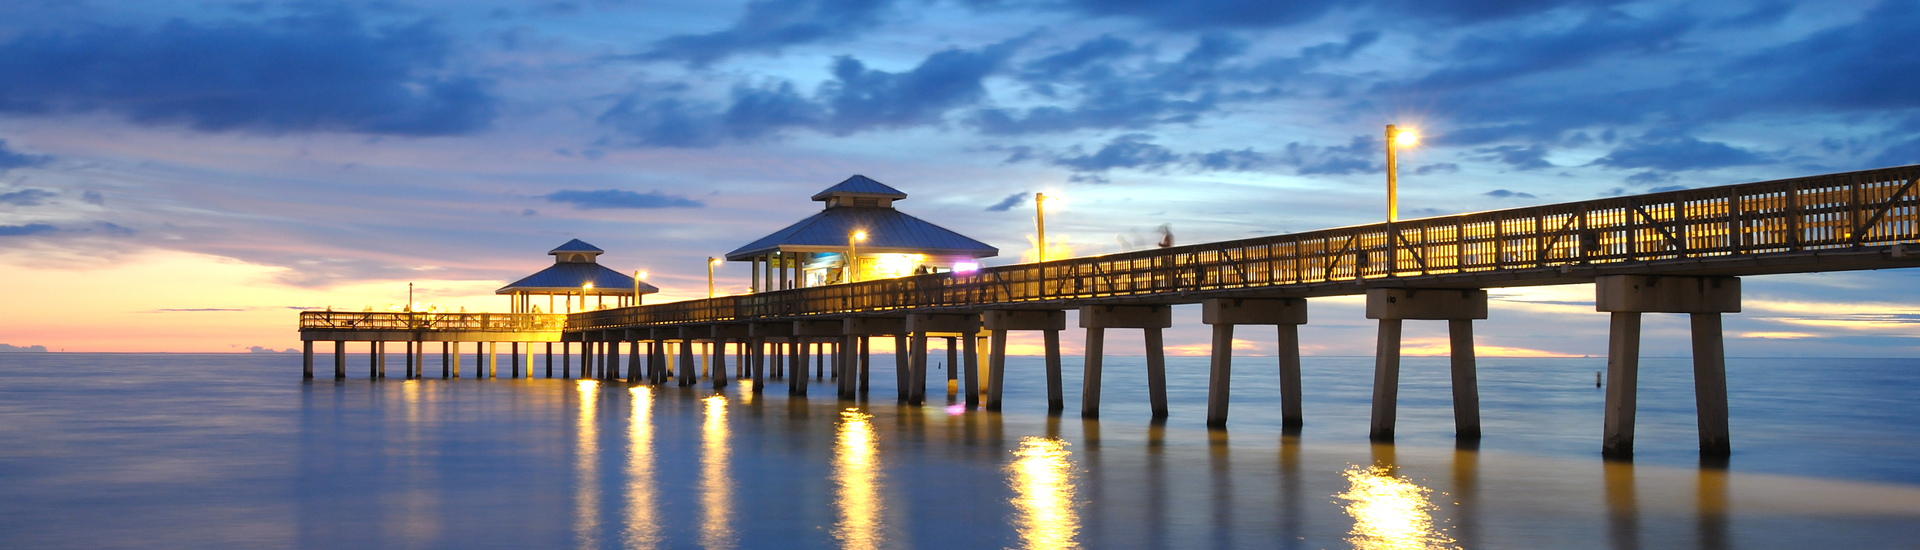 NAPLES PIER SUNSET 1920×550 WEB 300dpi